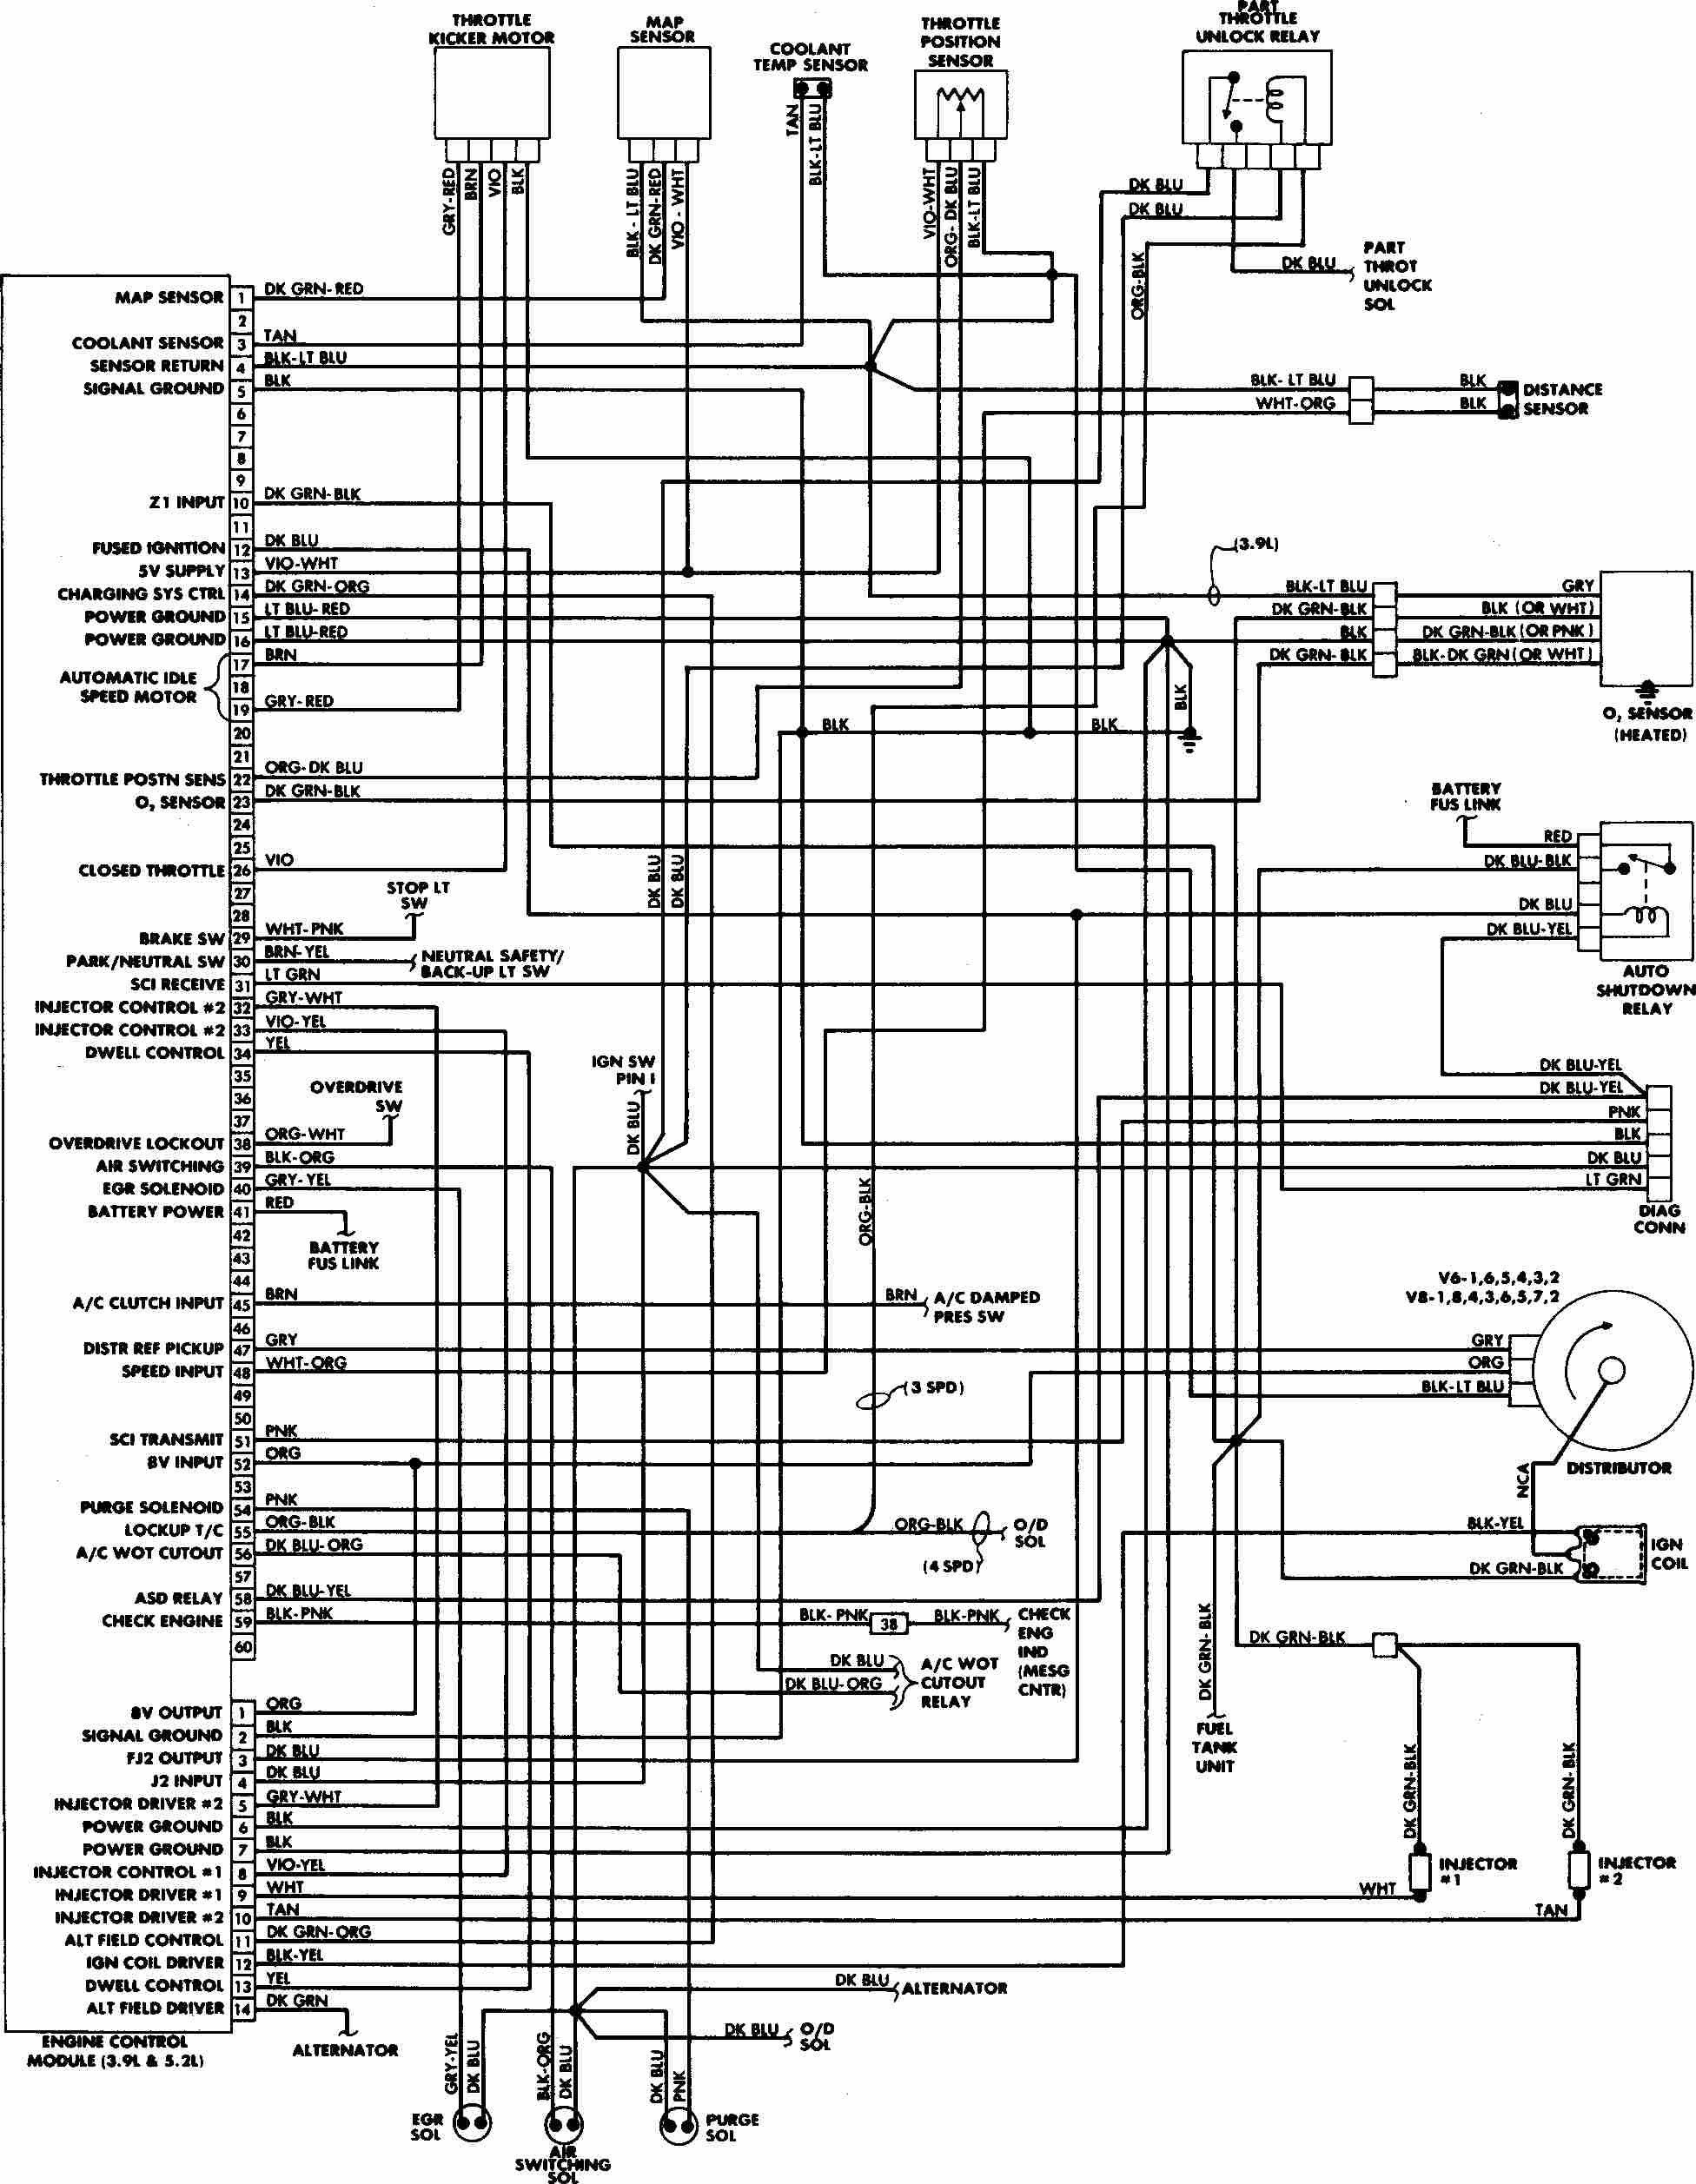 1976 Chevy Truck Wiring Diagram Chevy Wiring Diagrams